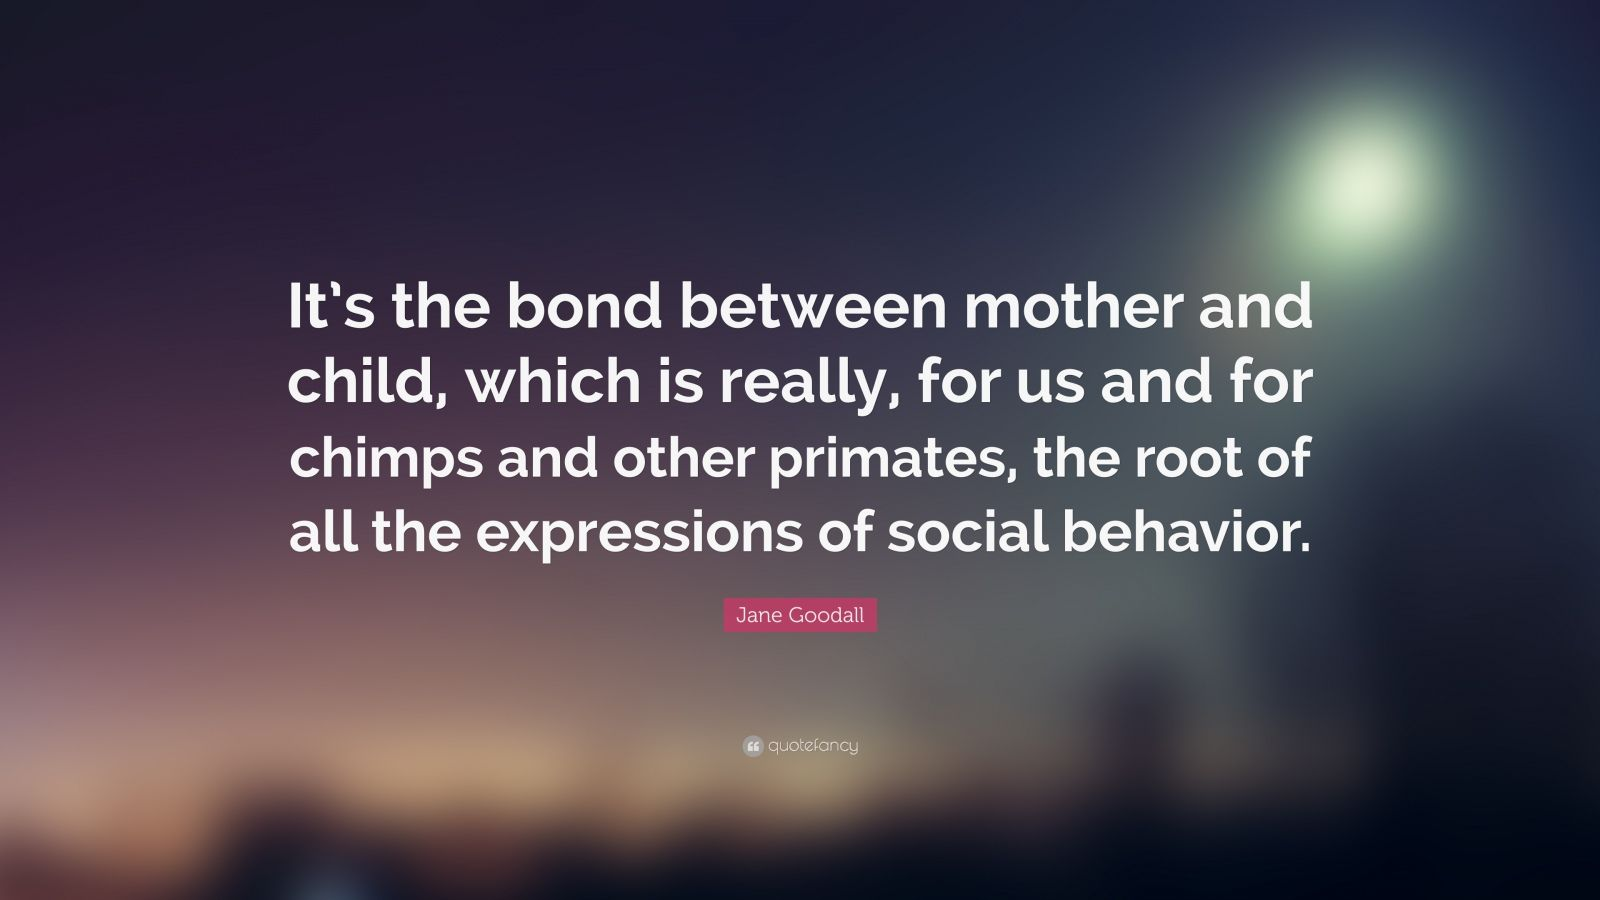 """Jane Goodall Quote: """"It's the bond between mother and child, which is really, for us and for chimps and other primates, the root of all the expressions of social behavior."""""""